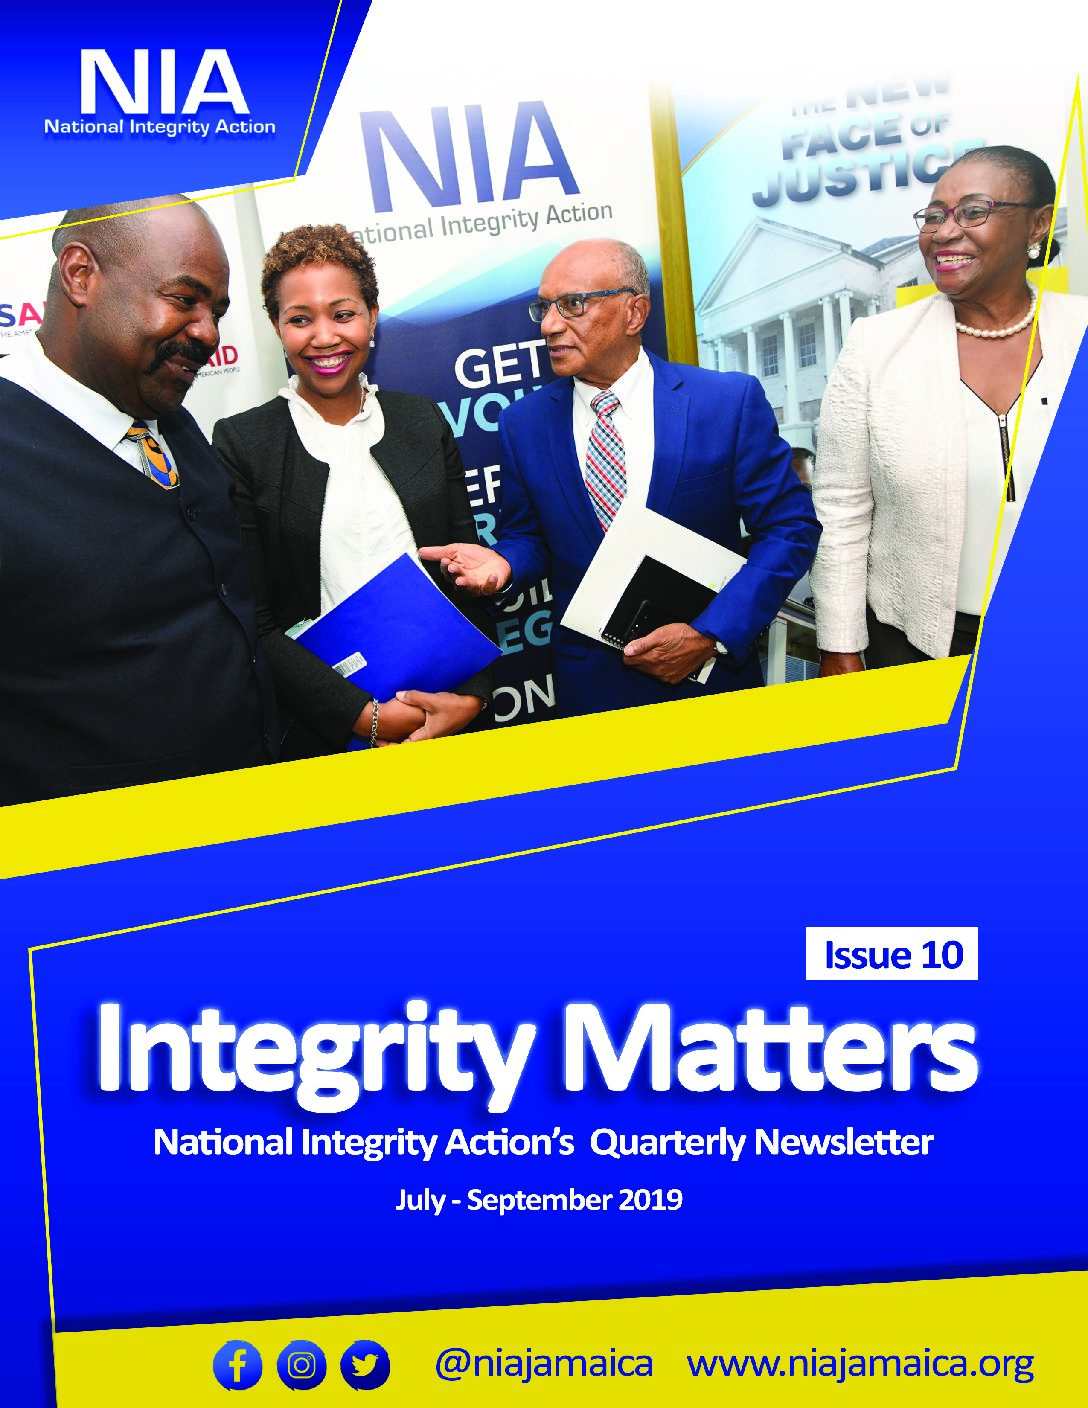 NIA's Quarterly Newsletter-Integrity Matters Issue 10